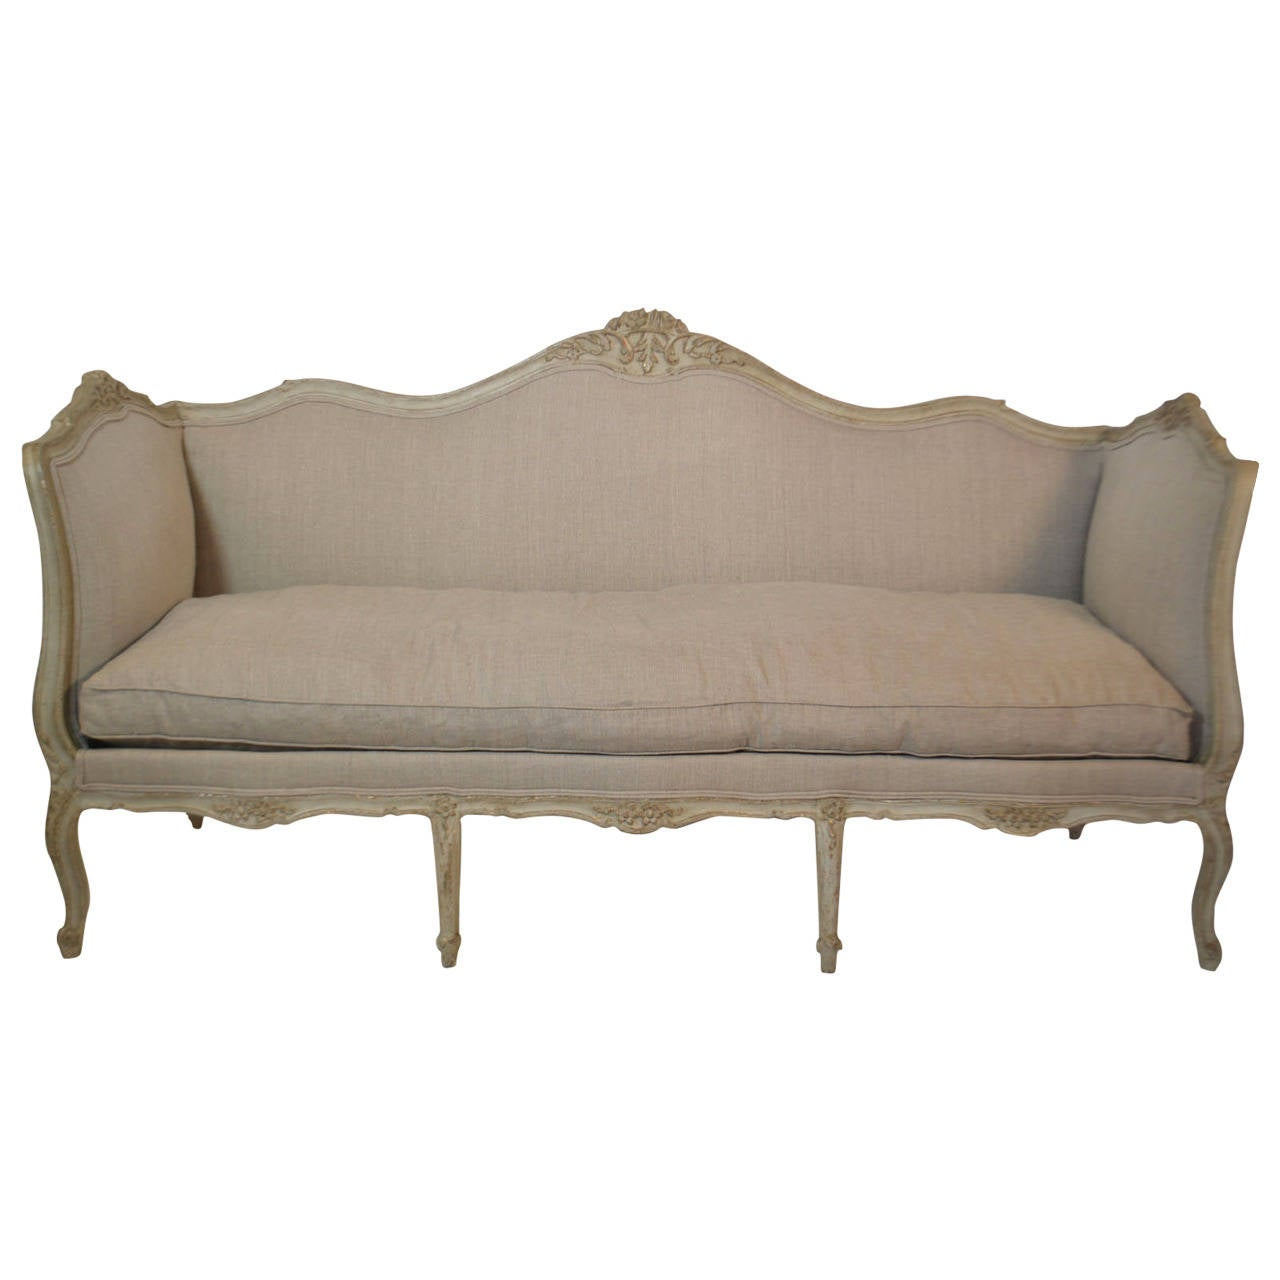 19th Century Louis XV Settee